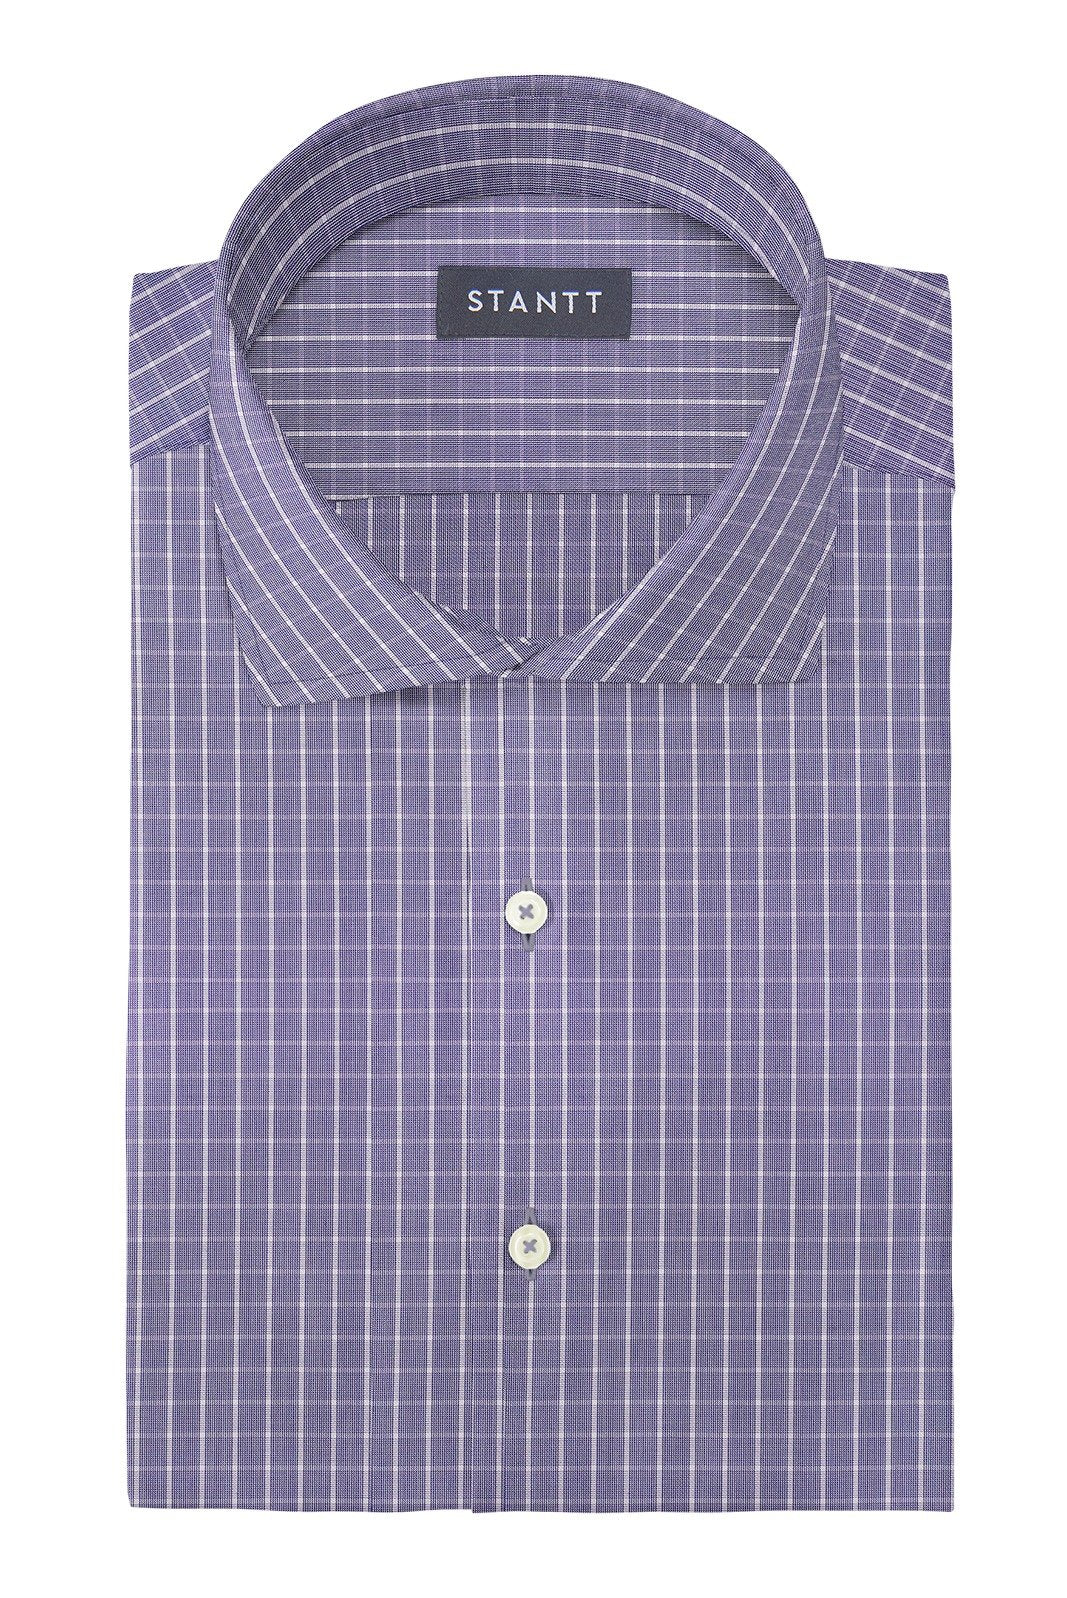 Wrinkle-Resistant Navy Gingham: Cutaway Collar, Barrel Cuff